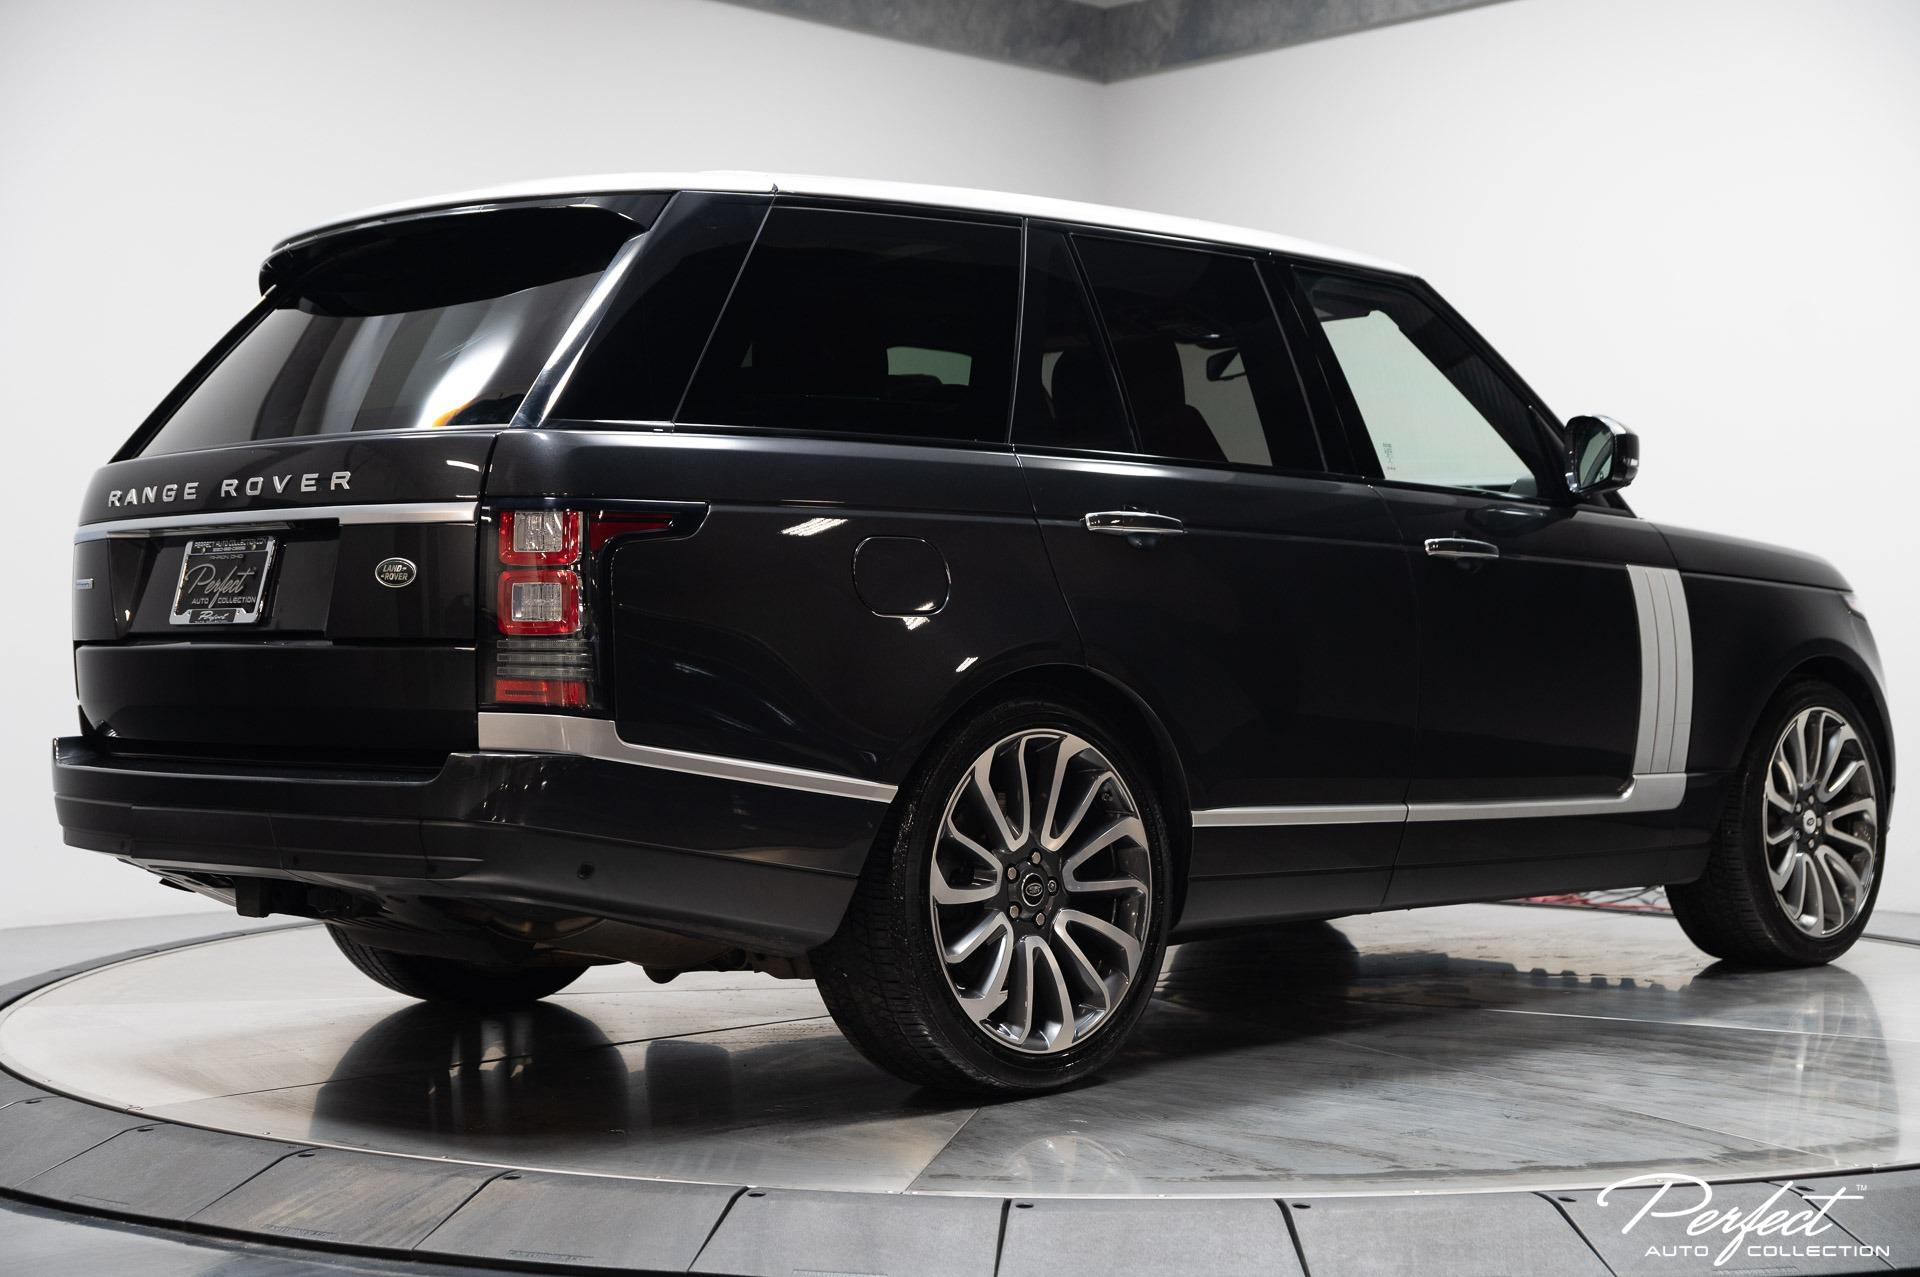 Used 2015 Land Rover Range Rover Autobiography for sale $63,795 at Perfect Auto Collection in Akron OH 44310 4